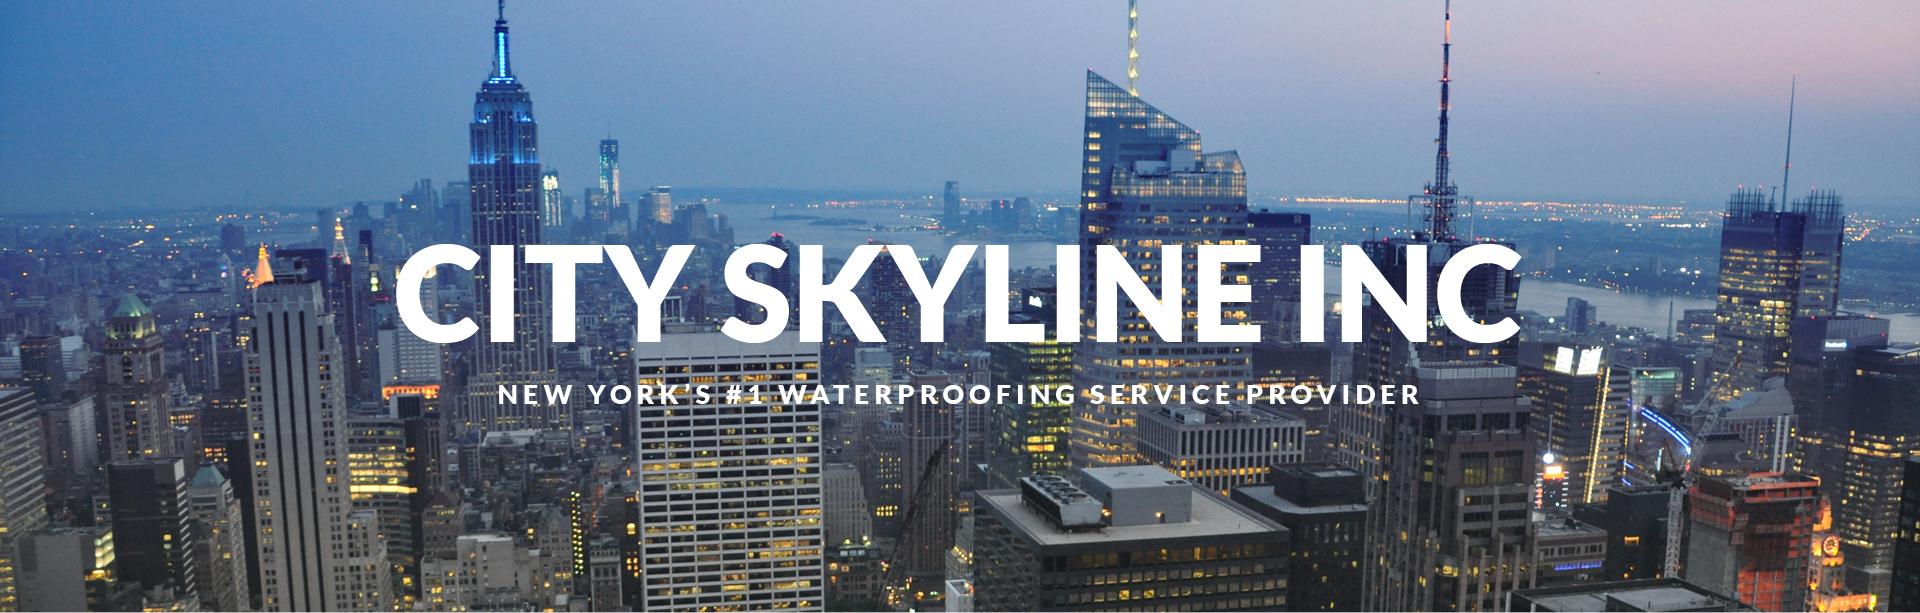 City Skyline Inc.